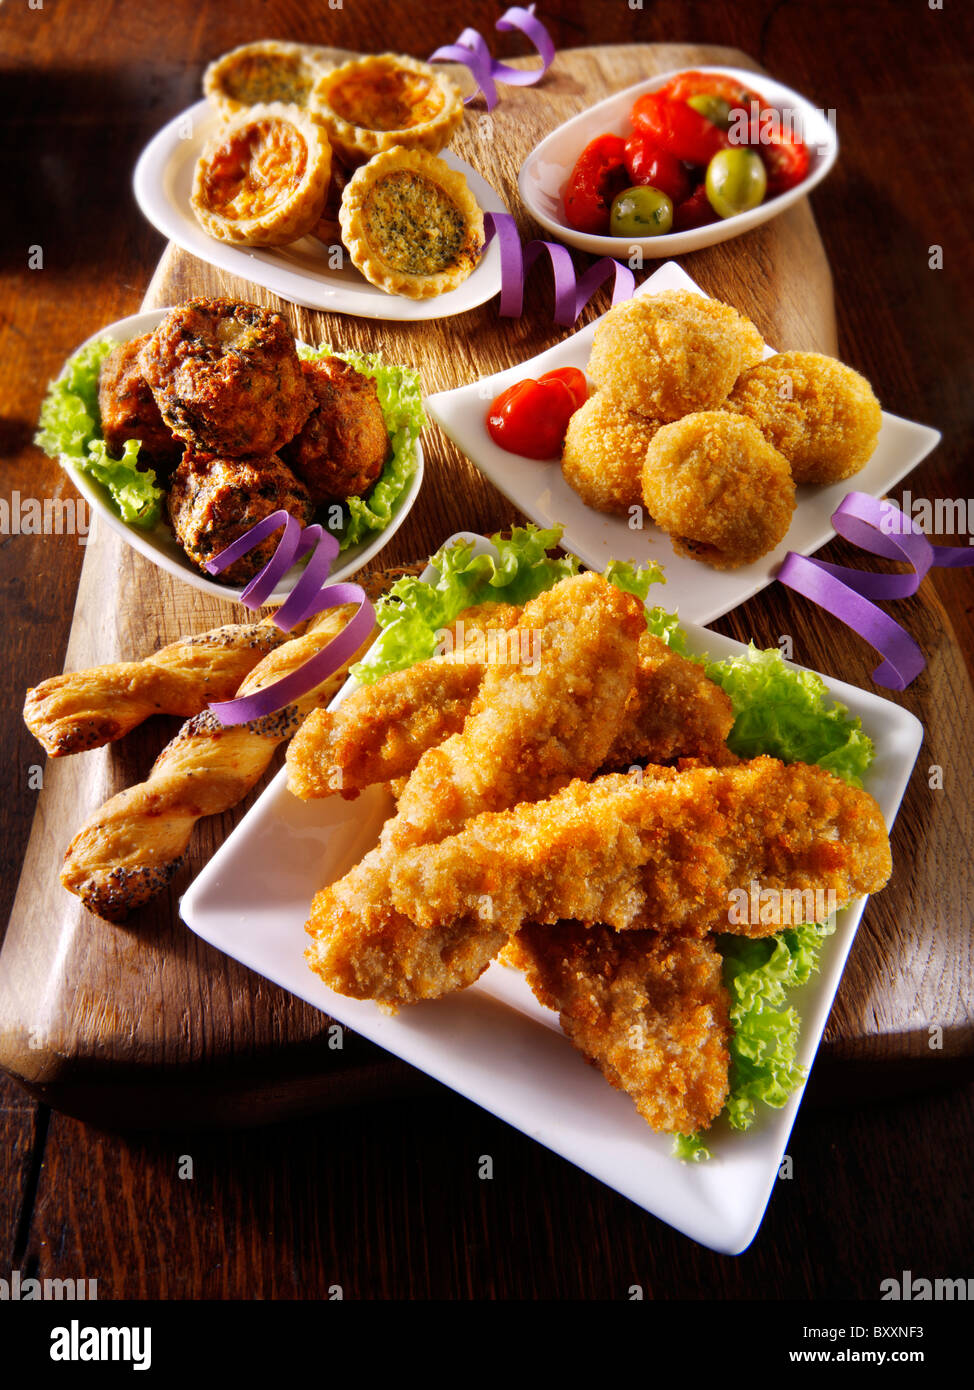 Groovy Party Buffet Food With Southern Fried Chicken Bhajis Mini Download Free Architecture Designs Scobabritishbridgeorg